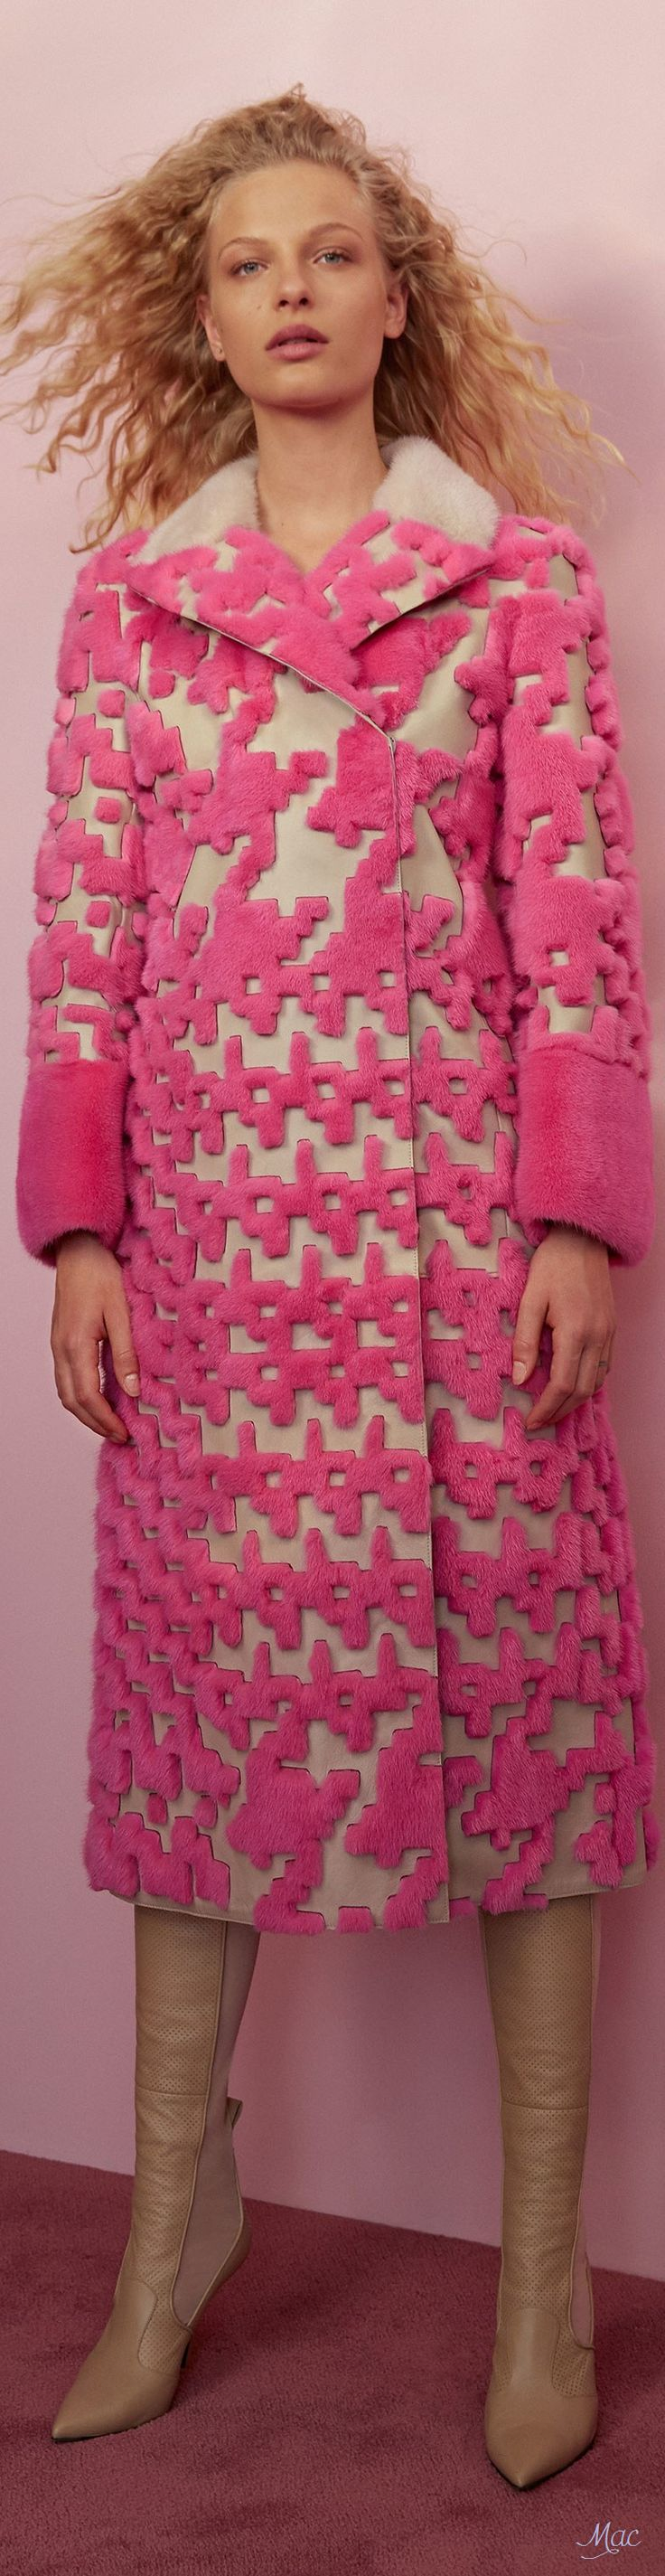 Resort 2018 Fendi